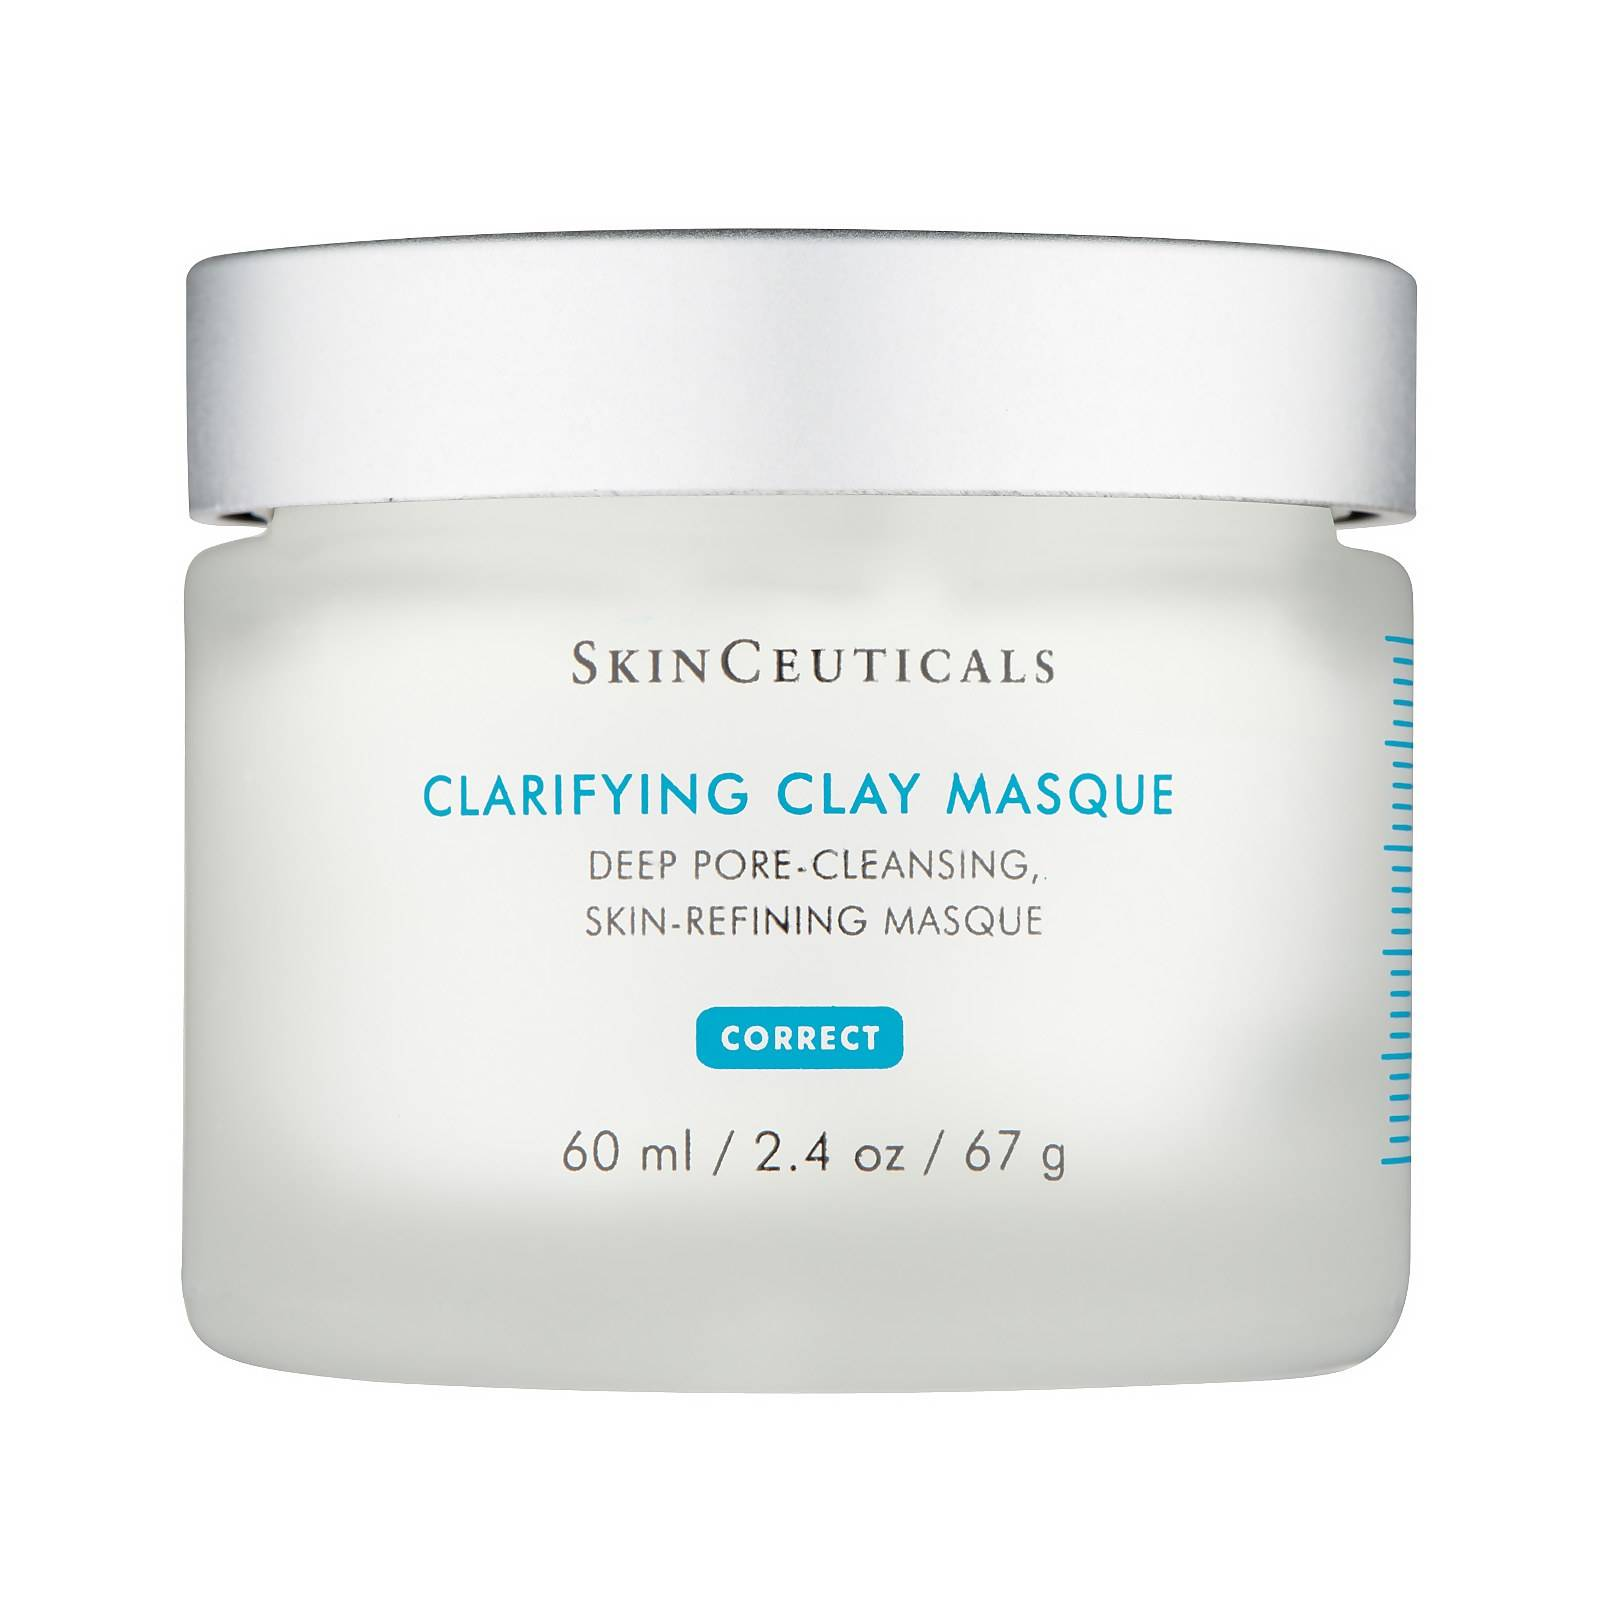 SkinCeuticals Masque purifiant désincrustant Clarifying Clay Masque SkinCeuticals 60 ml